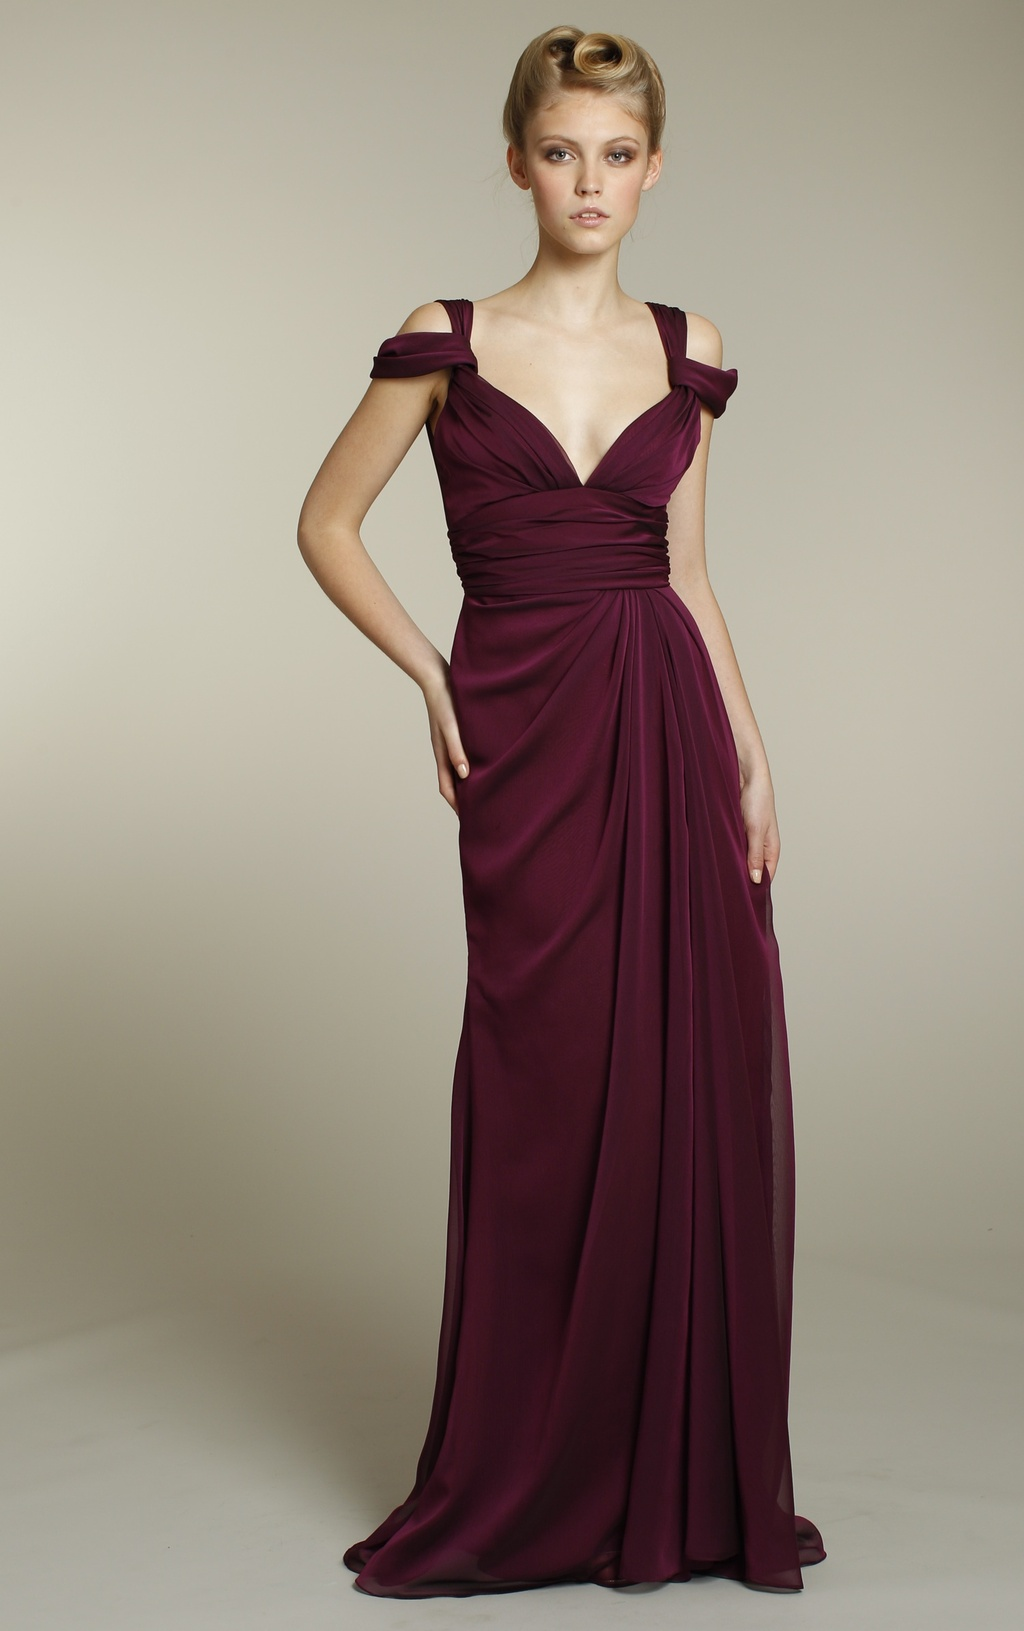 Maroon-bridesmaid-dress-full-length-2011.full